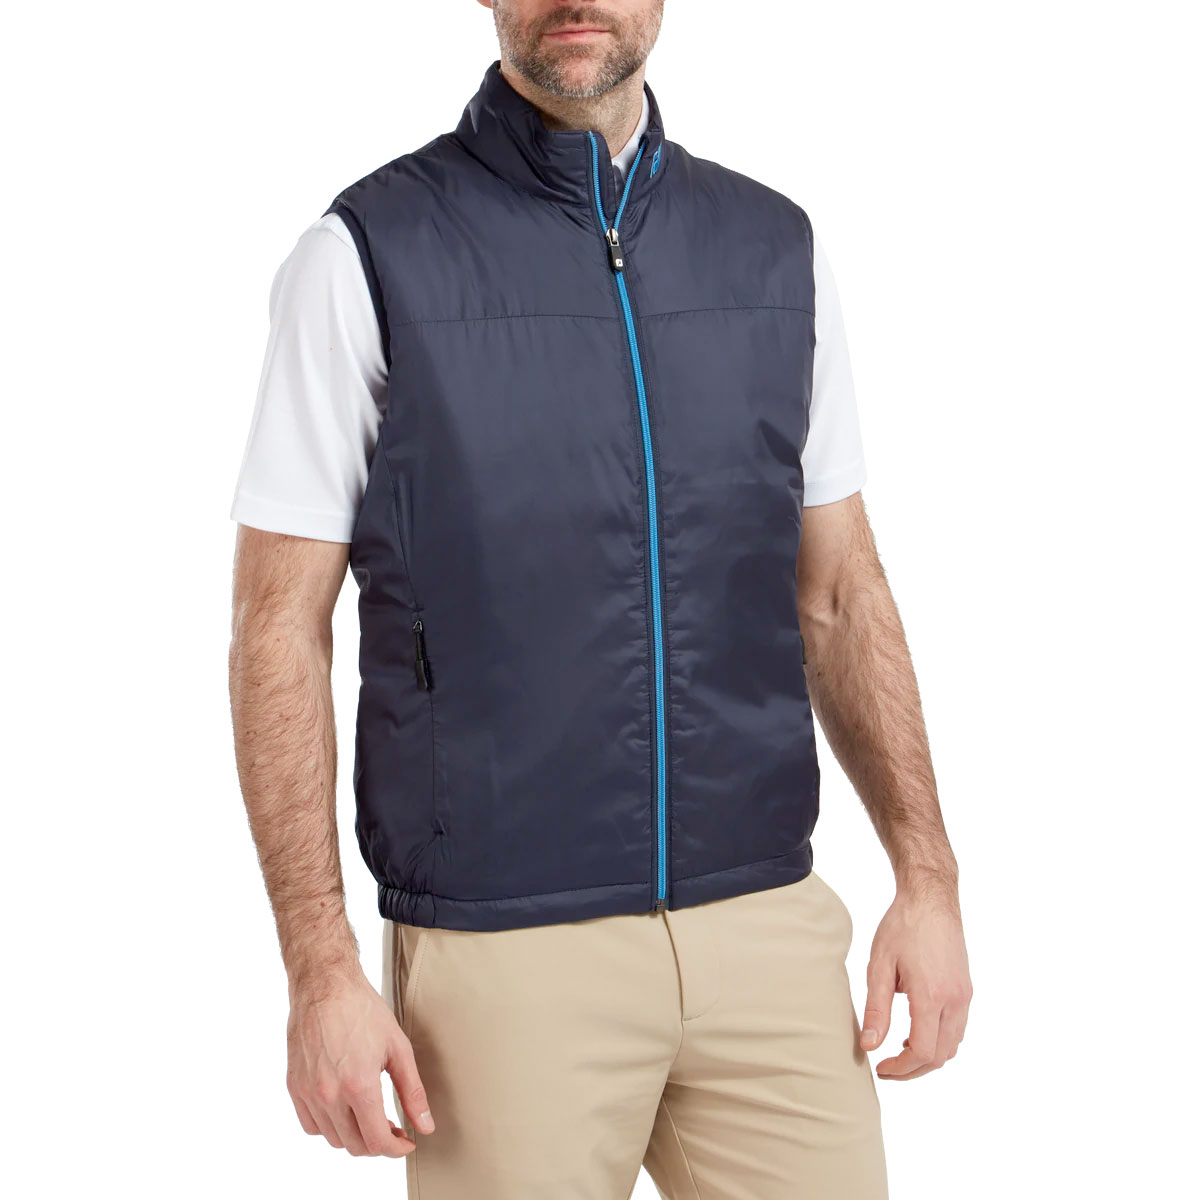 FootJoy Lightweight Thermal Insulated Vest Gilet